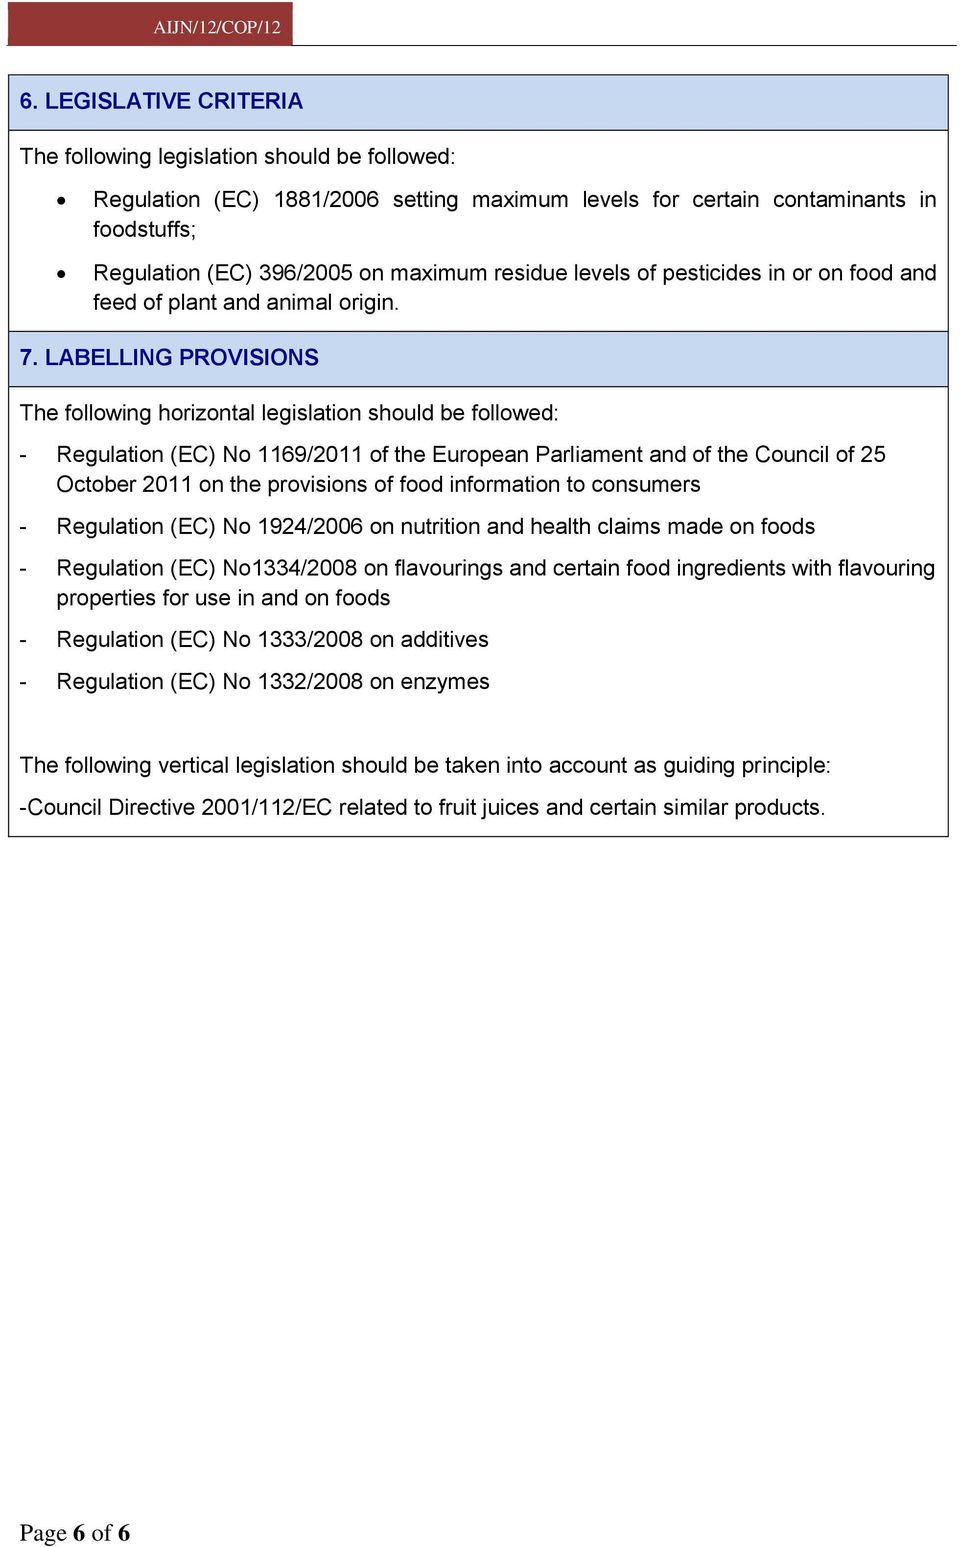 LABELLING PROVISIONS The following horizontal legislation should be followed: - Regulation (EC) No 1169/2011 of the European Parliament and of the Council of 25 October 2011 on the provisions of food